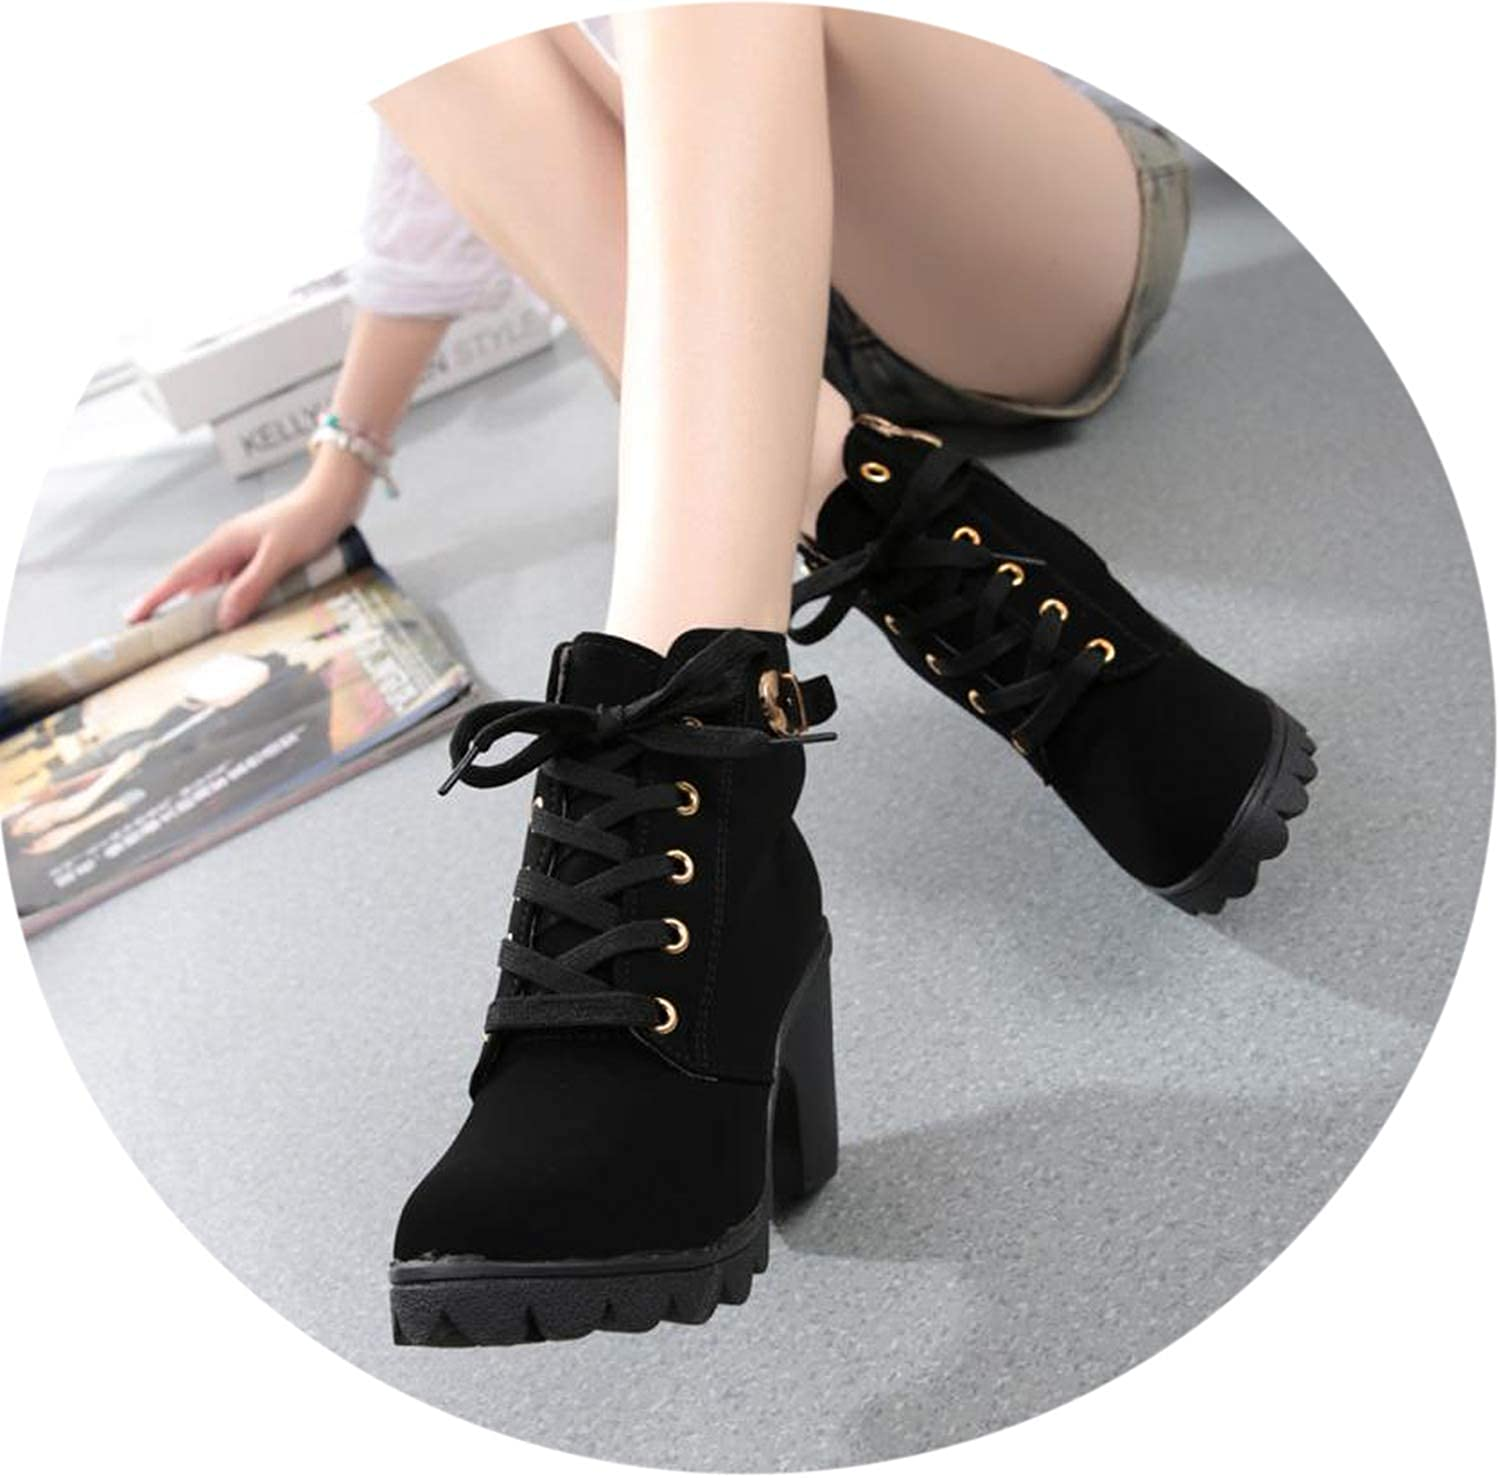 Spring Women's High Heel Lace Up Ankle Boots Buckle Platform shoes Pumps shoes Sapato